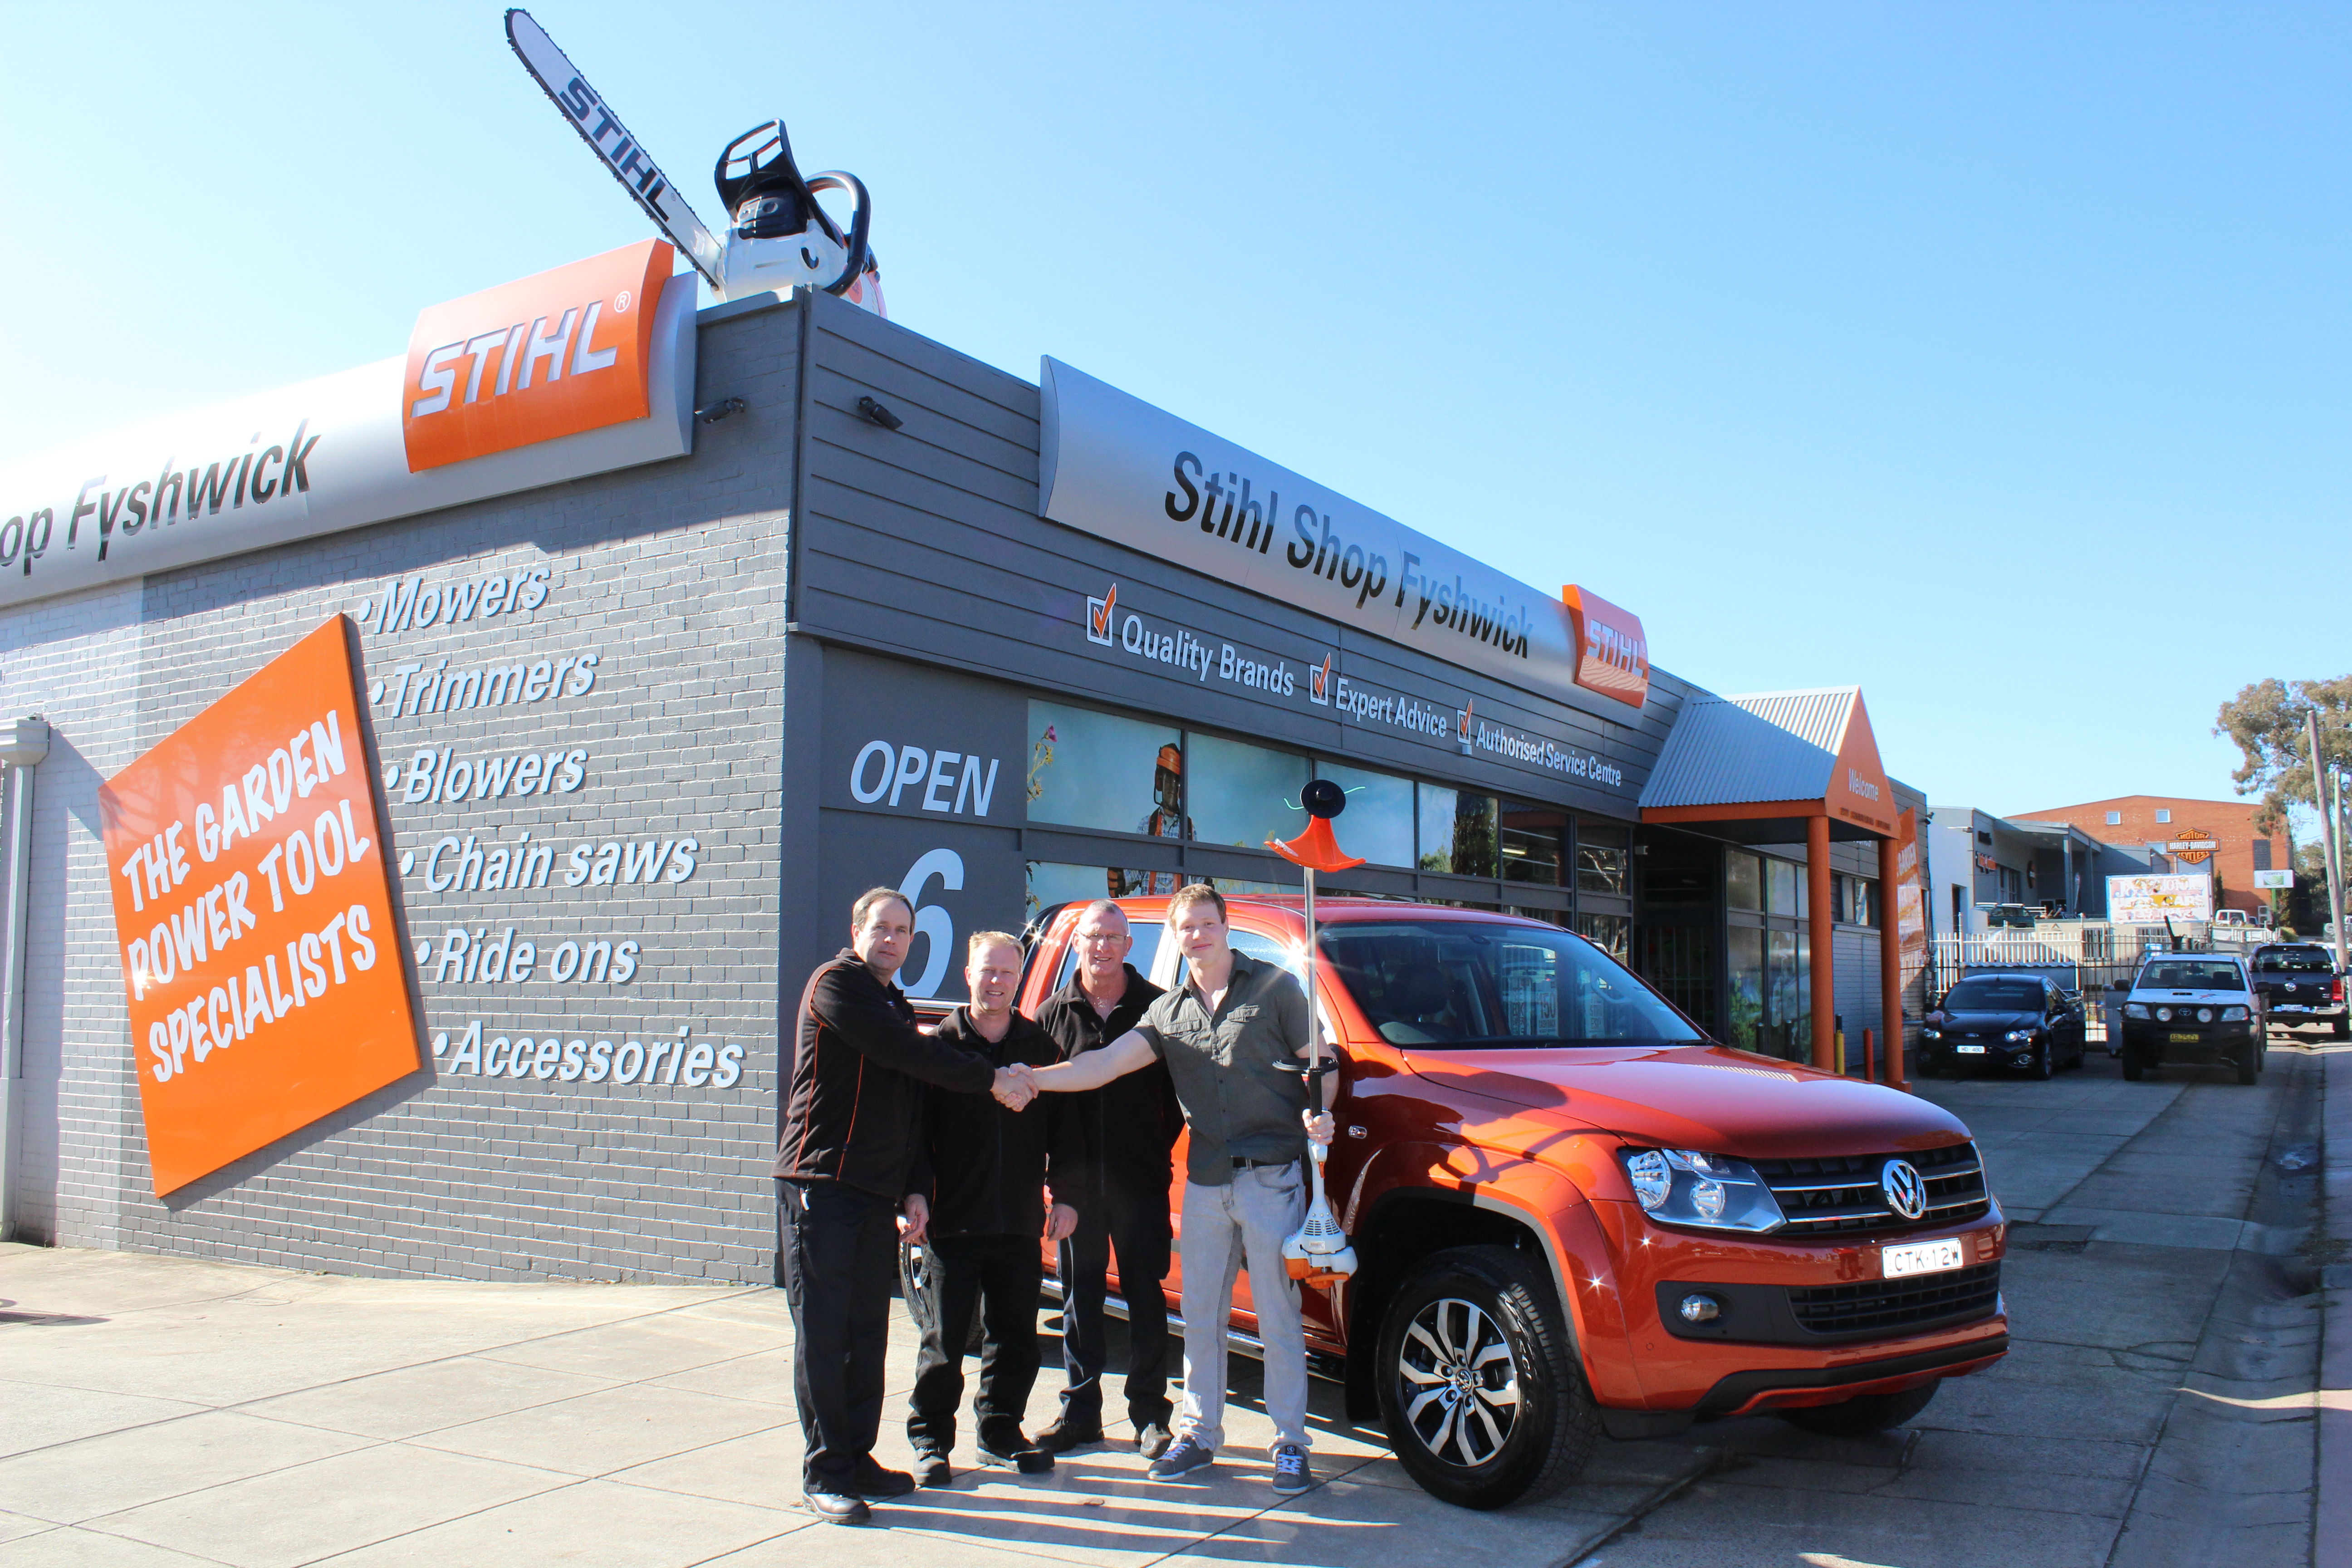 queanbeyan s alexander eglitis scores a ute at the stihl shop canberra citynews. Black Bedroom Furniture Sets. Home Design Ideas